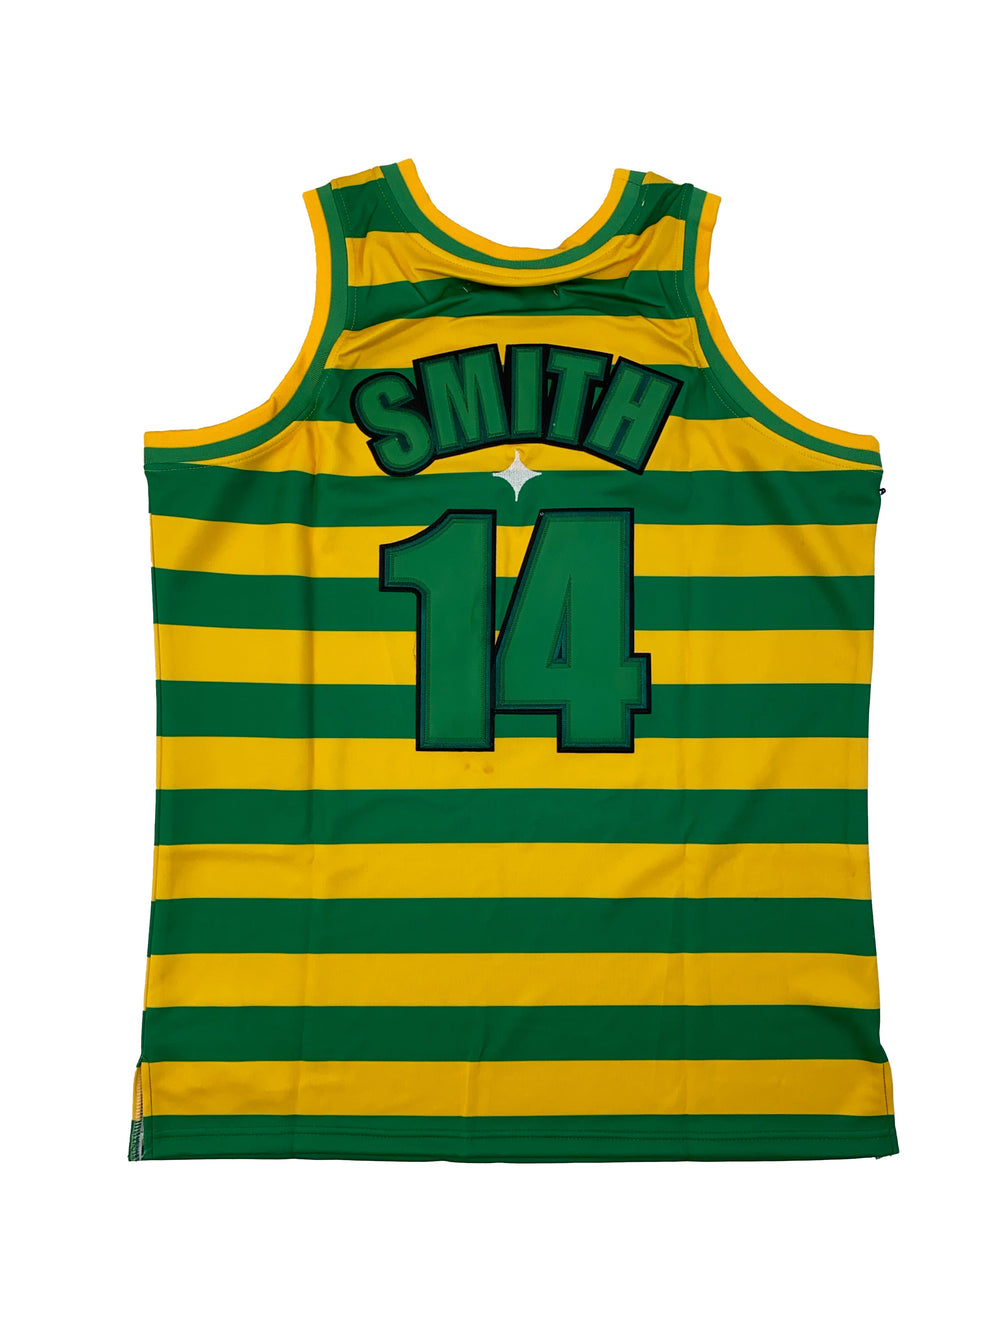 Striped fresh prince of bel air basketball jersey